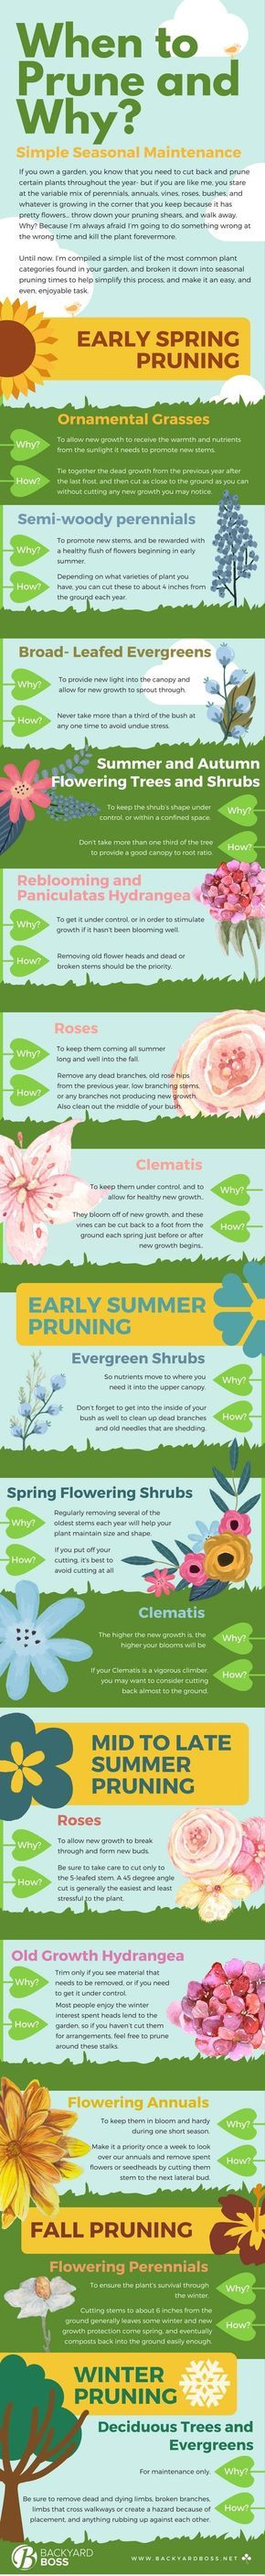 Simple seasonal maintenance when to prune and why pruning shears